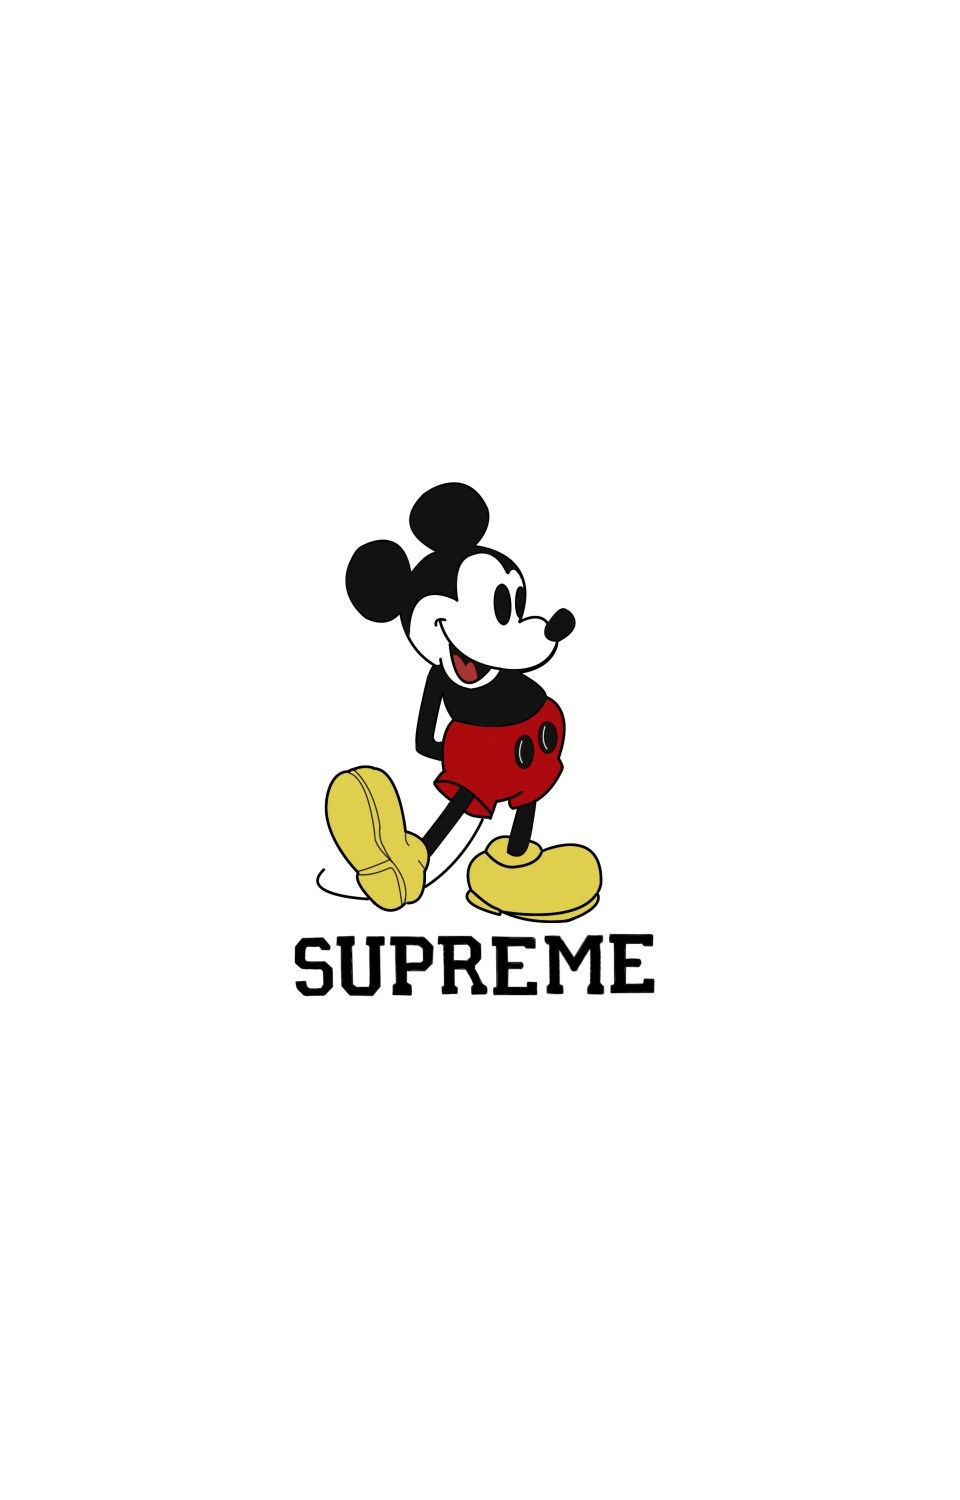 Pin by Bunchhath Heng on Wall Supreme wallpaper Mickey mouse 960x1500